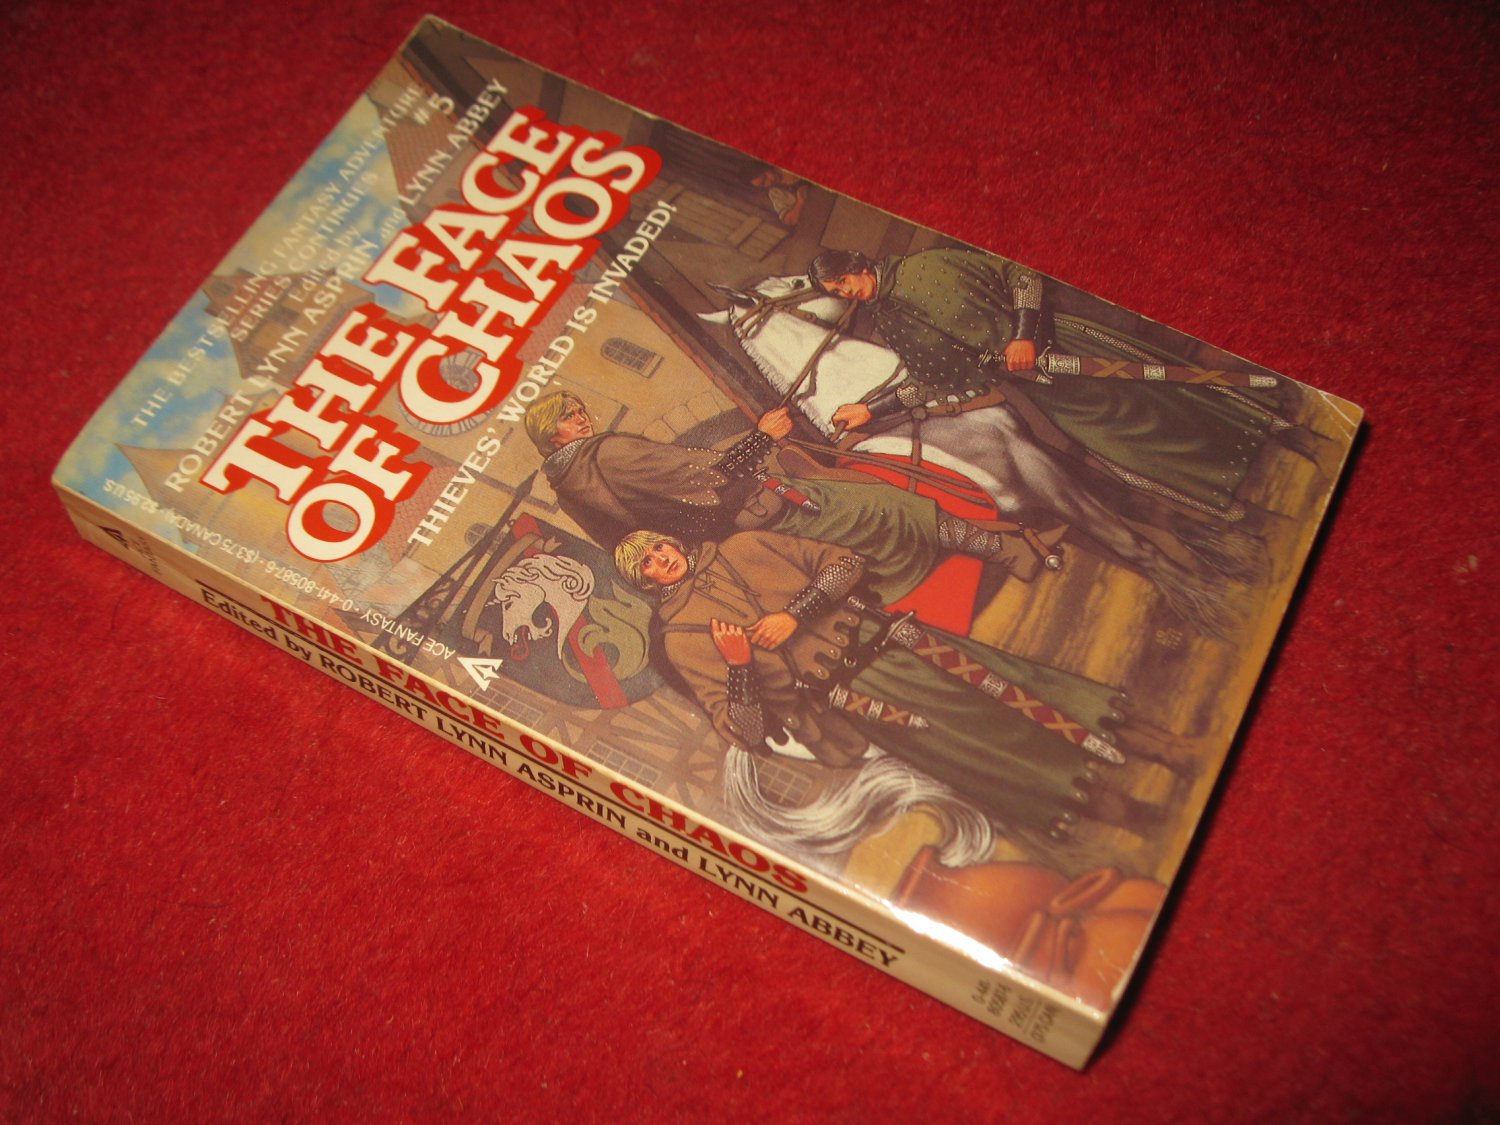 1984 The Face of Chaos (after thieves world #5) - by Robert Lynn Asprin - Ace books - paperback